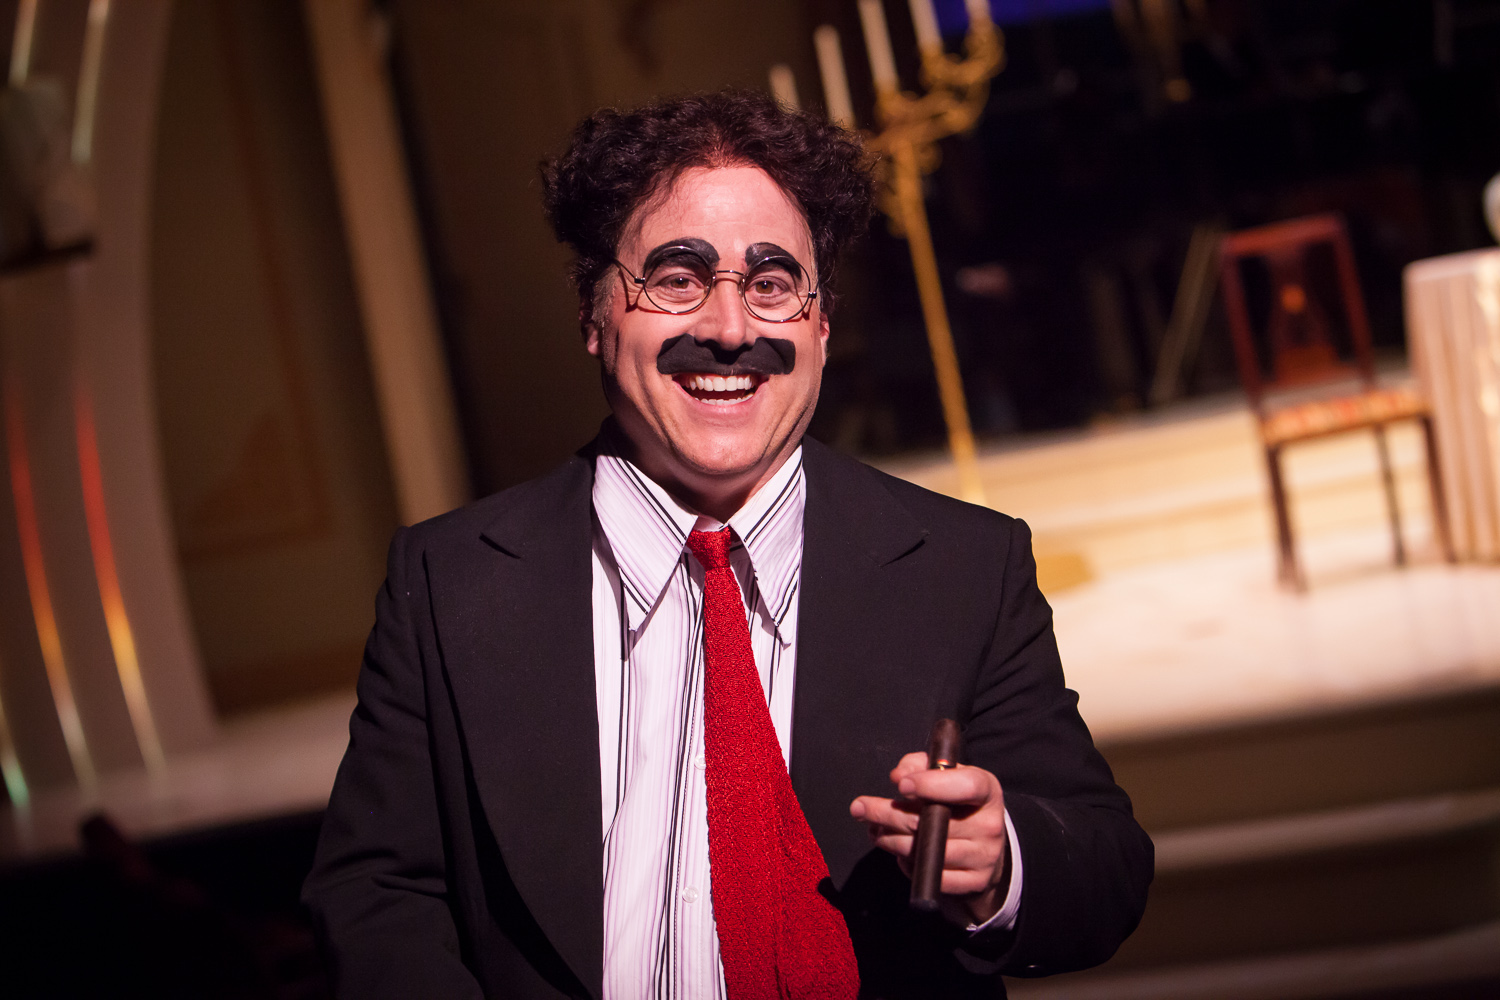 Jim Ferris walks up to my camera in an improv moment during ANIMAL CRACKERS at the Denver Center Theatre Company, photo by Jennifer Koskinen, Merritt Design Photo